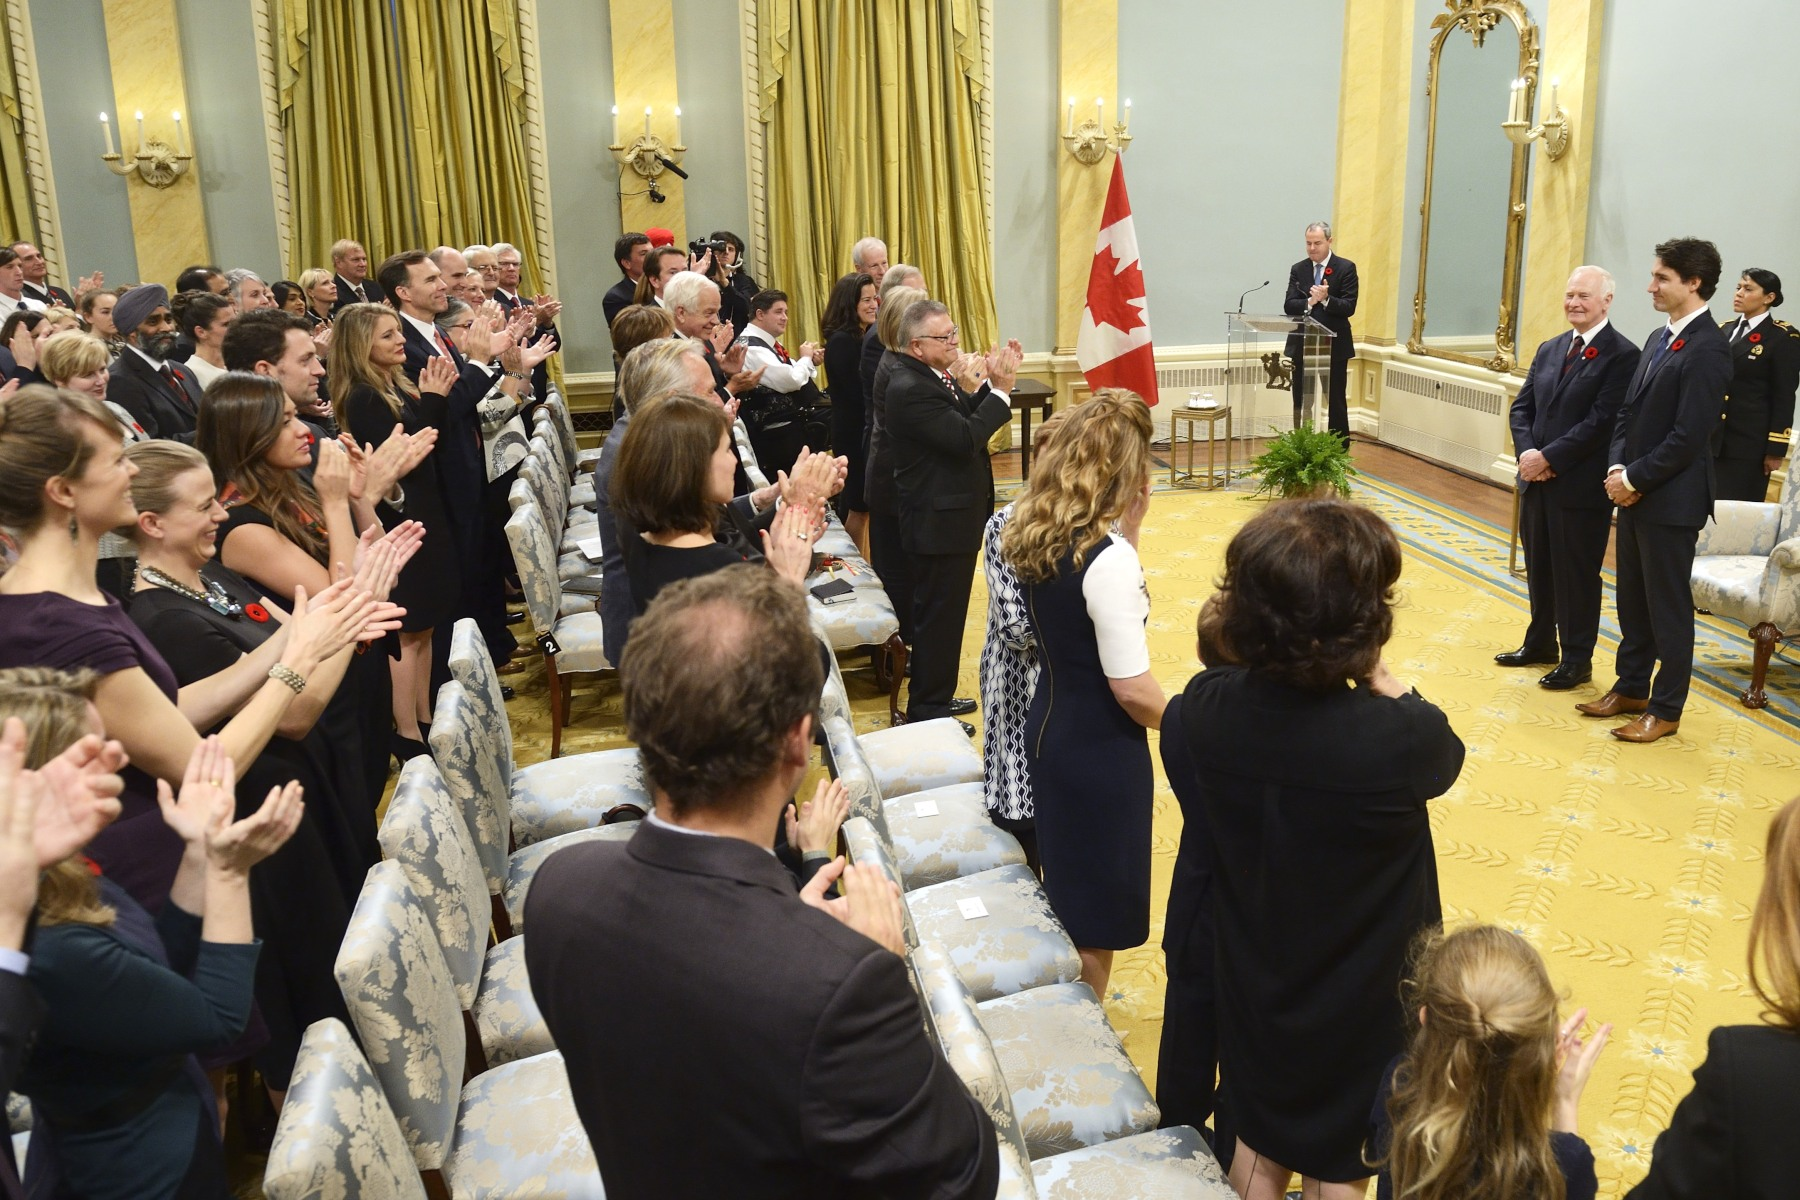 The new Prime Minister received a warm standing ovation.